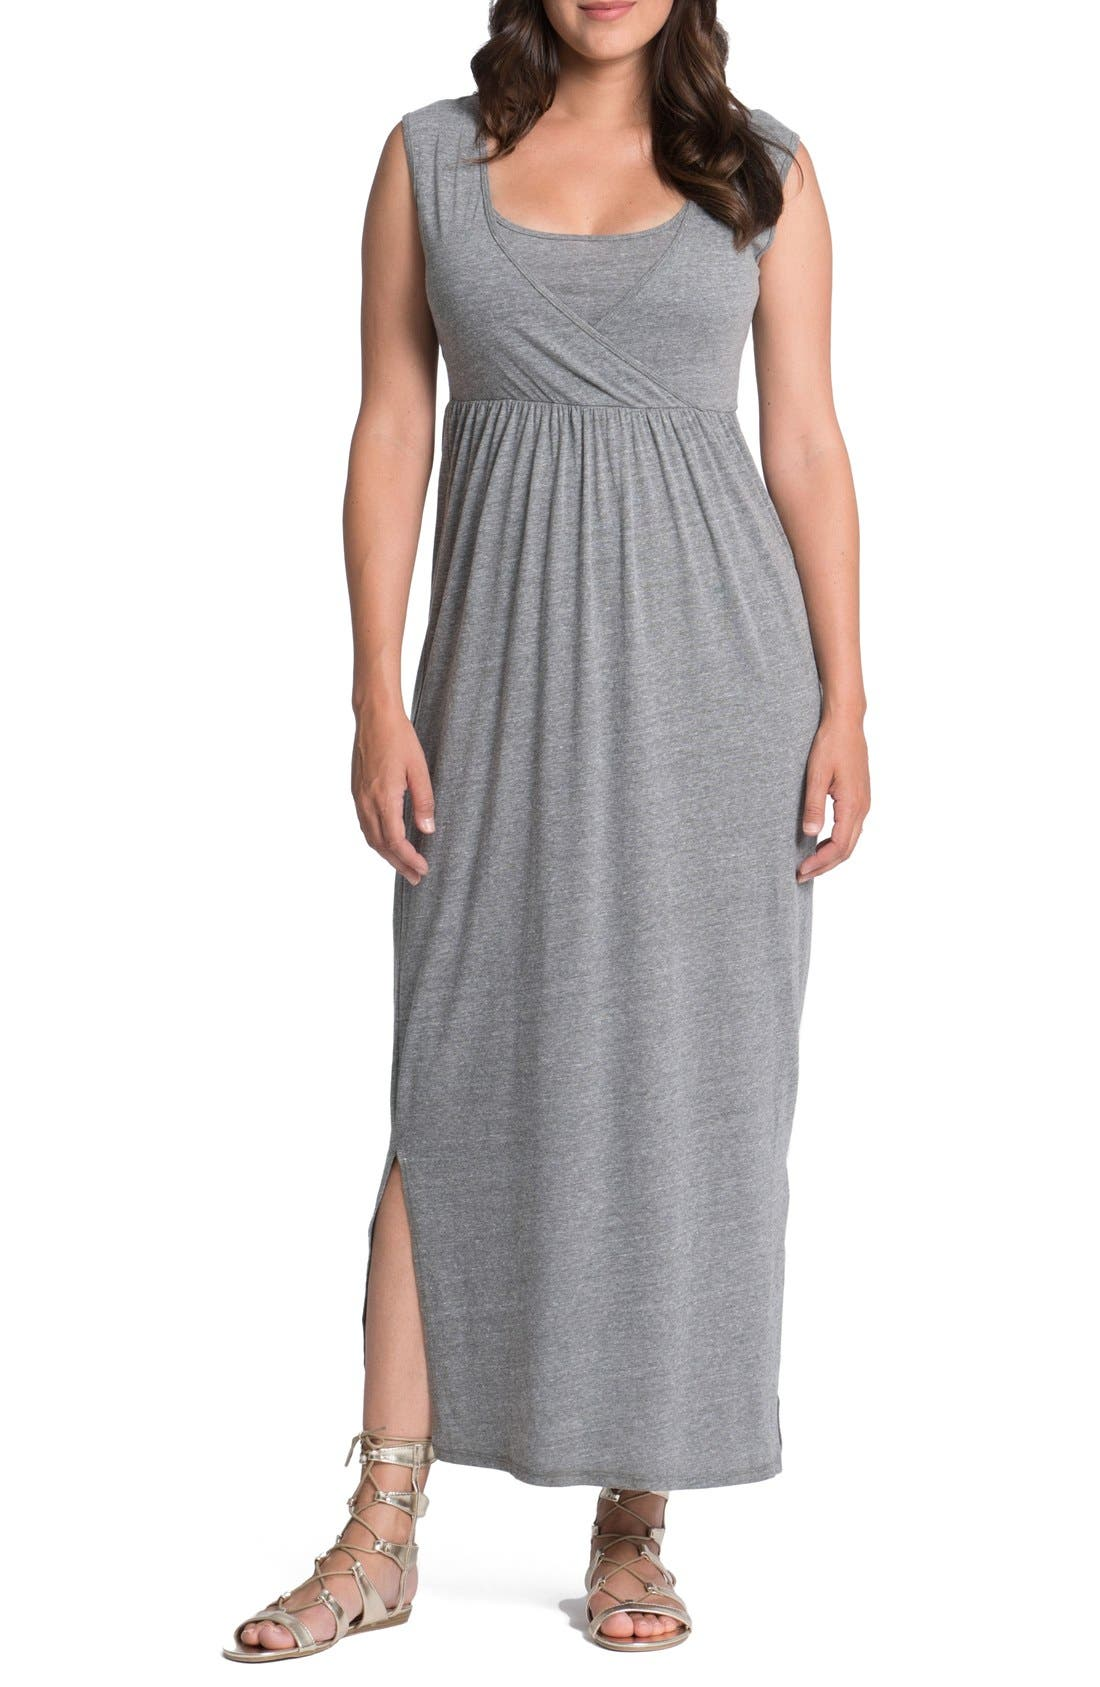 Bun Maternity Cross Top Maternity/Nursing Maxi Dress